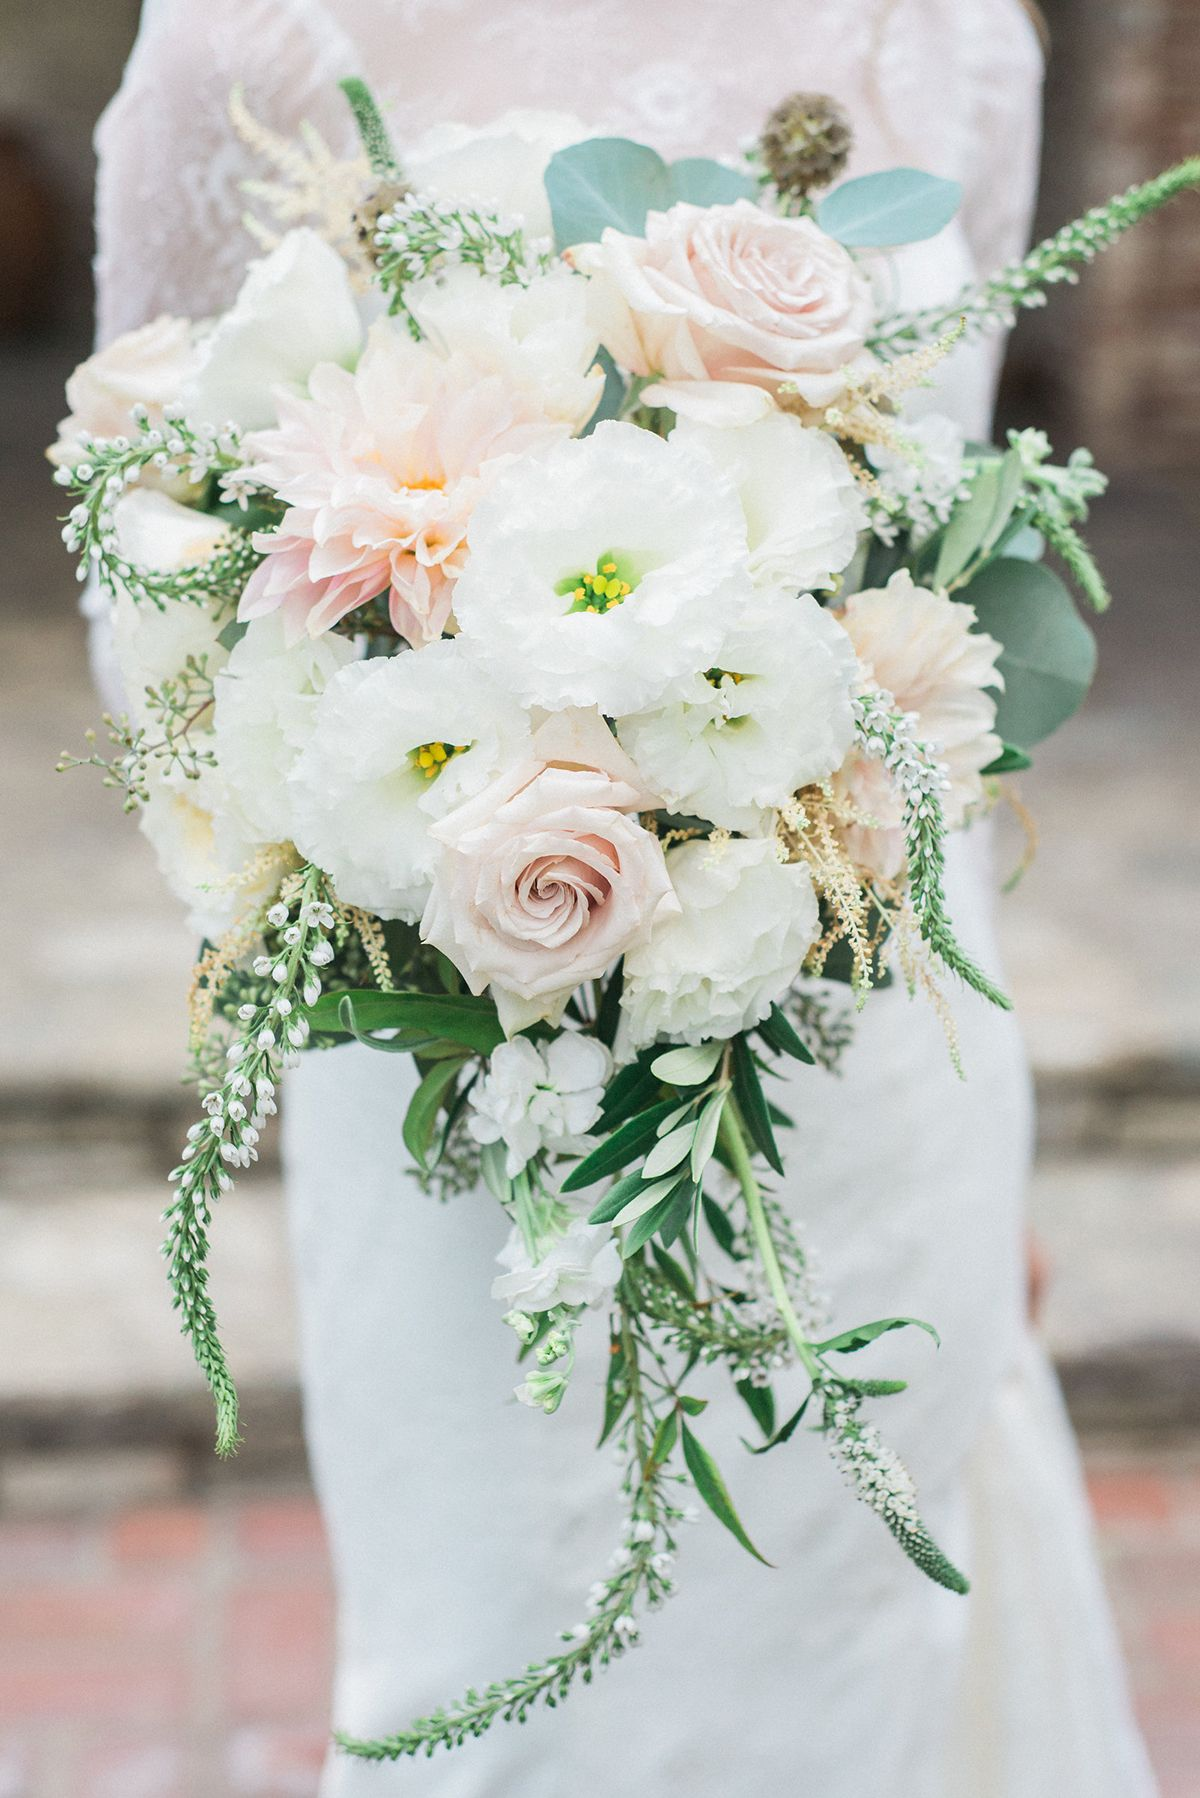 Pin By Kelsey Maddox On Wedding Flower Decor Pinterest Wedding